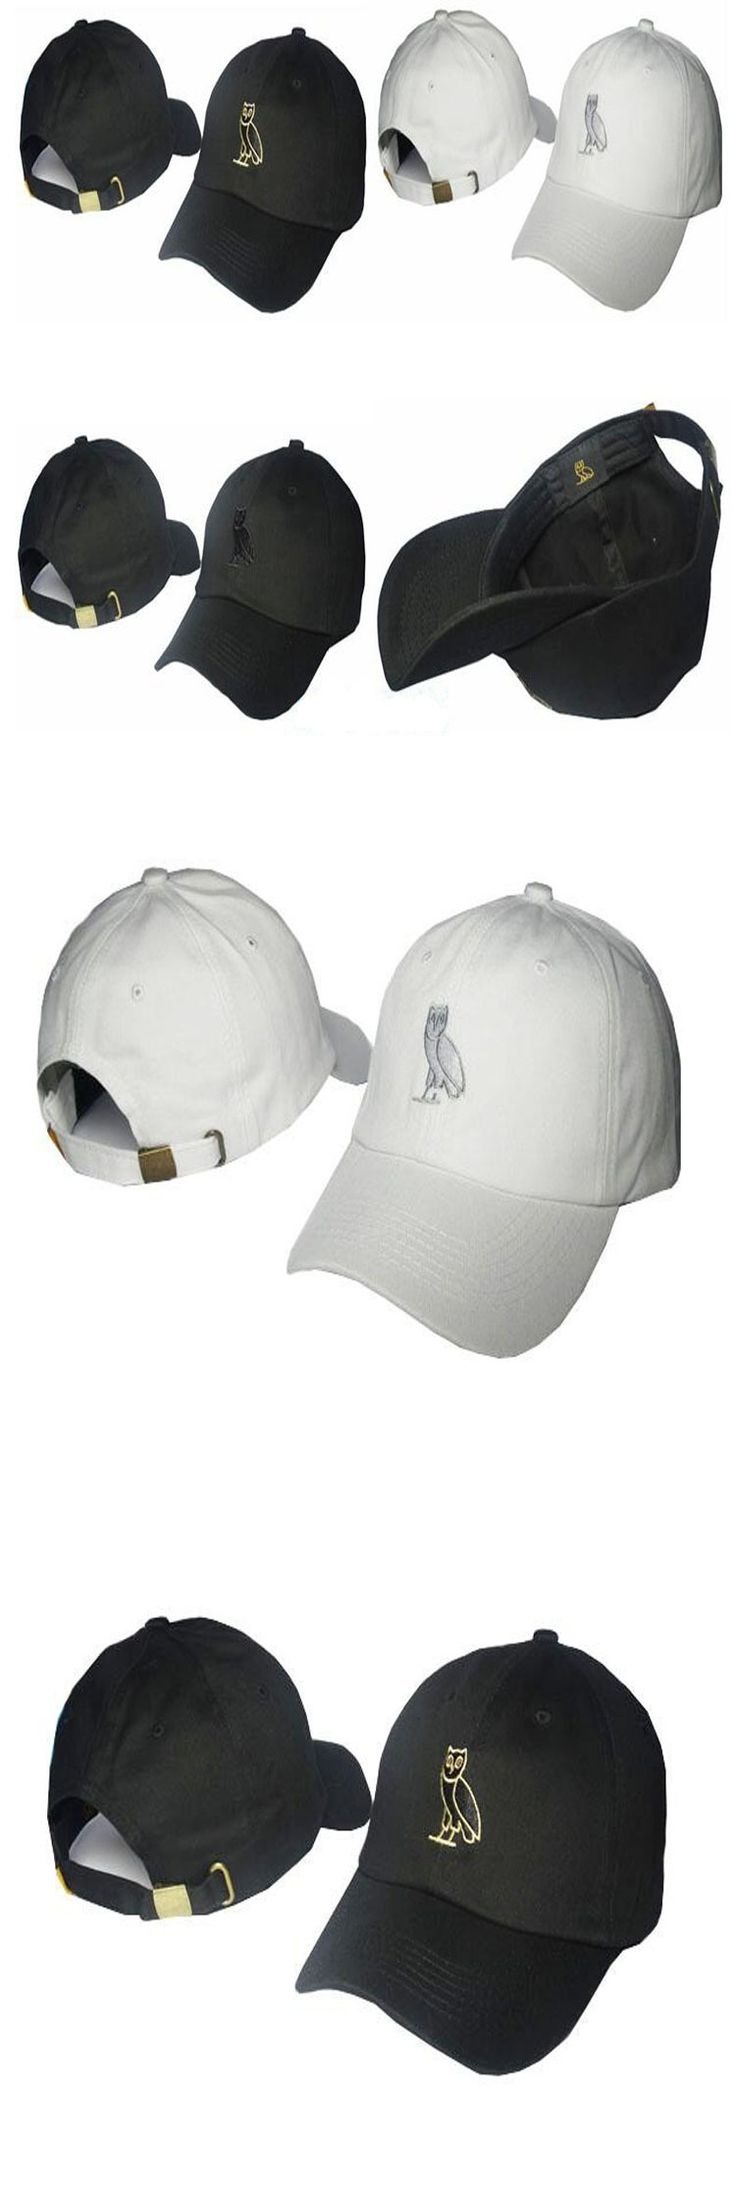 Men women high quality basic style cool baseball cap blank solid color custom embroidery logo baseball hat with metal closure